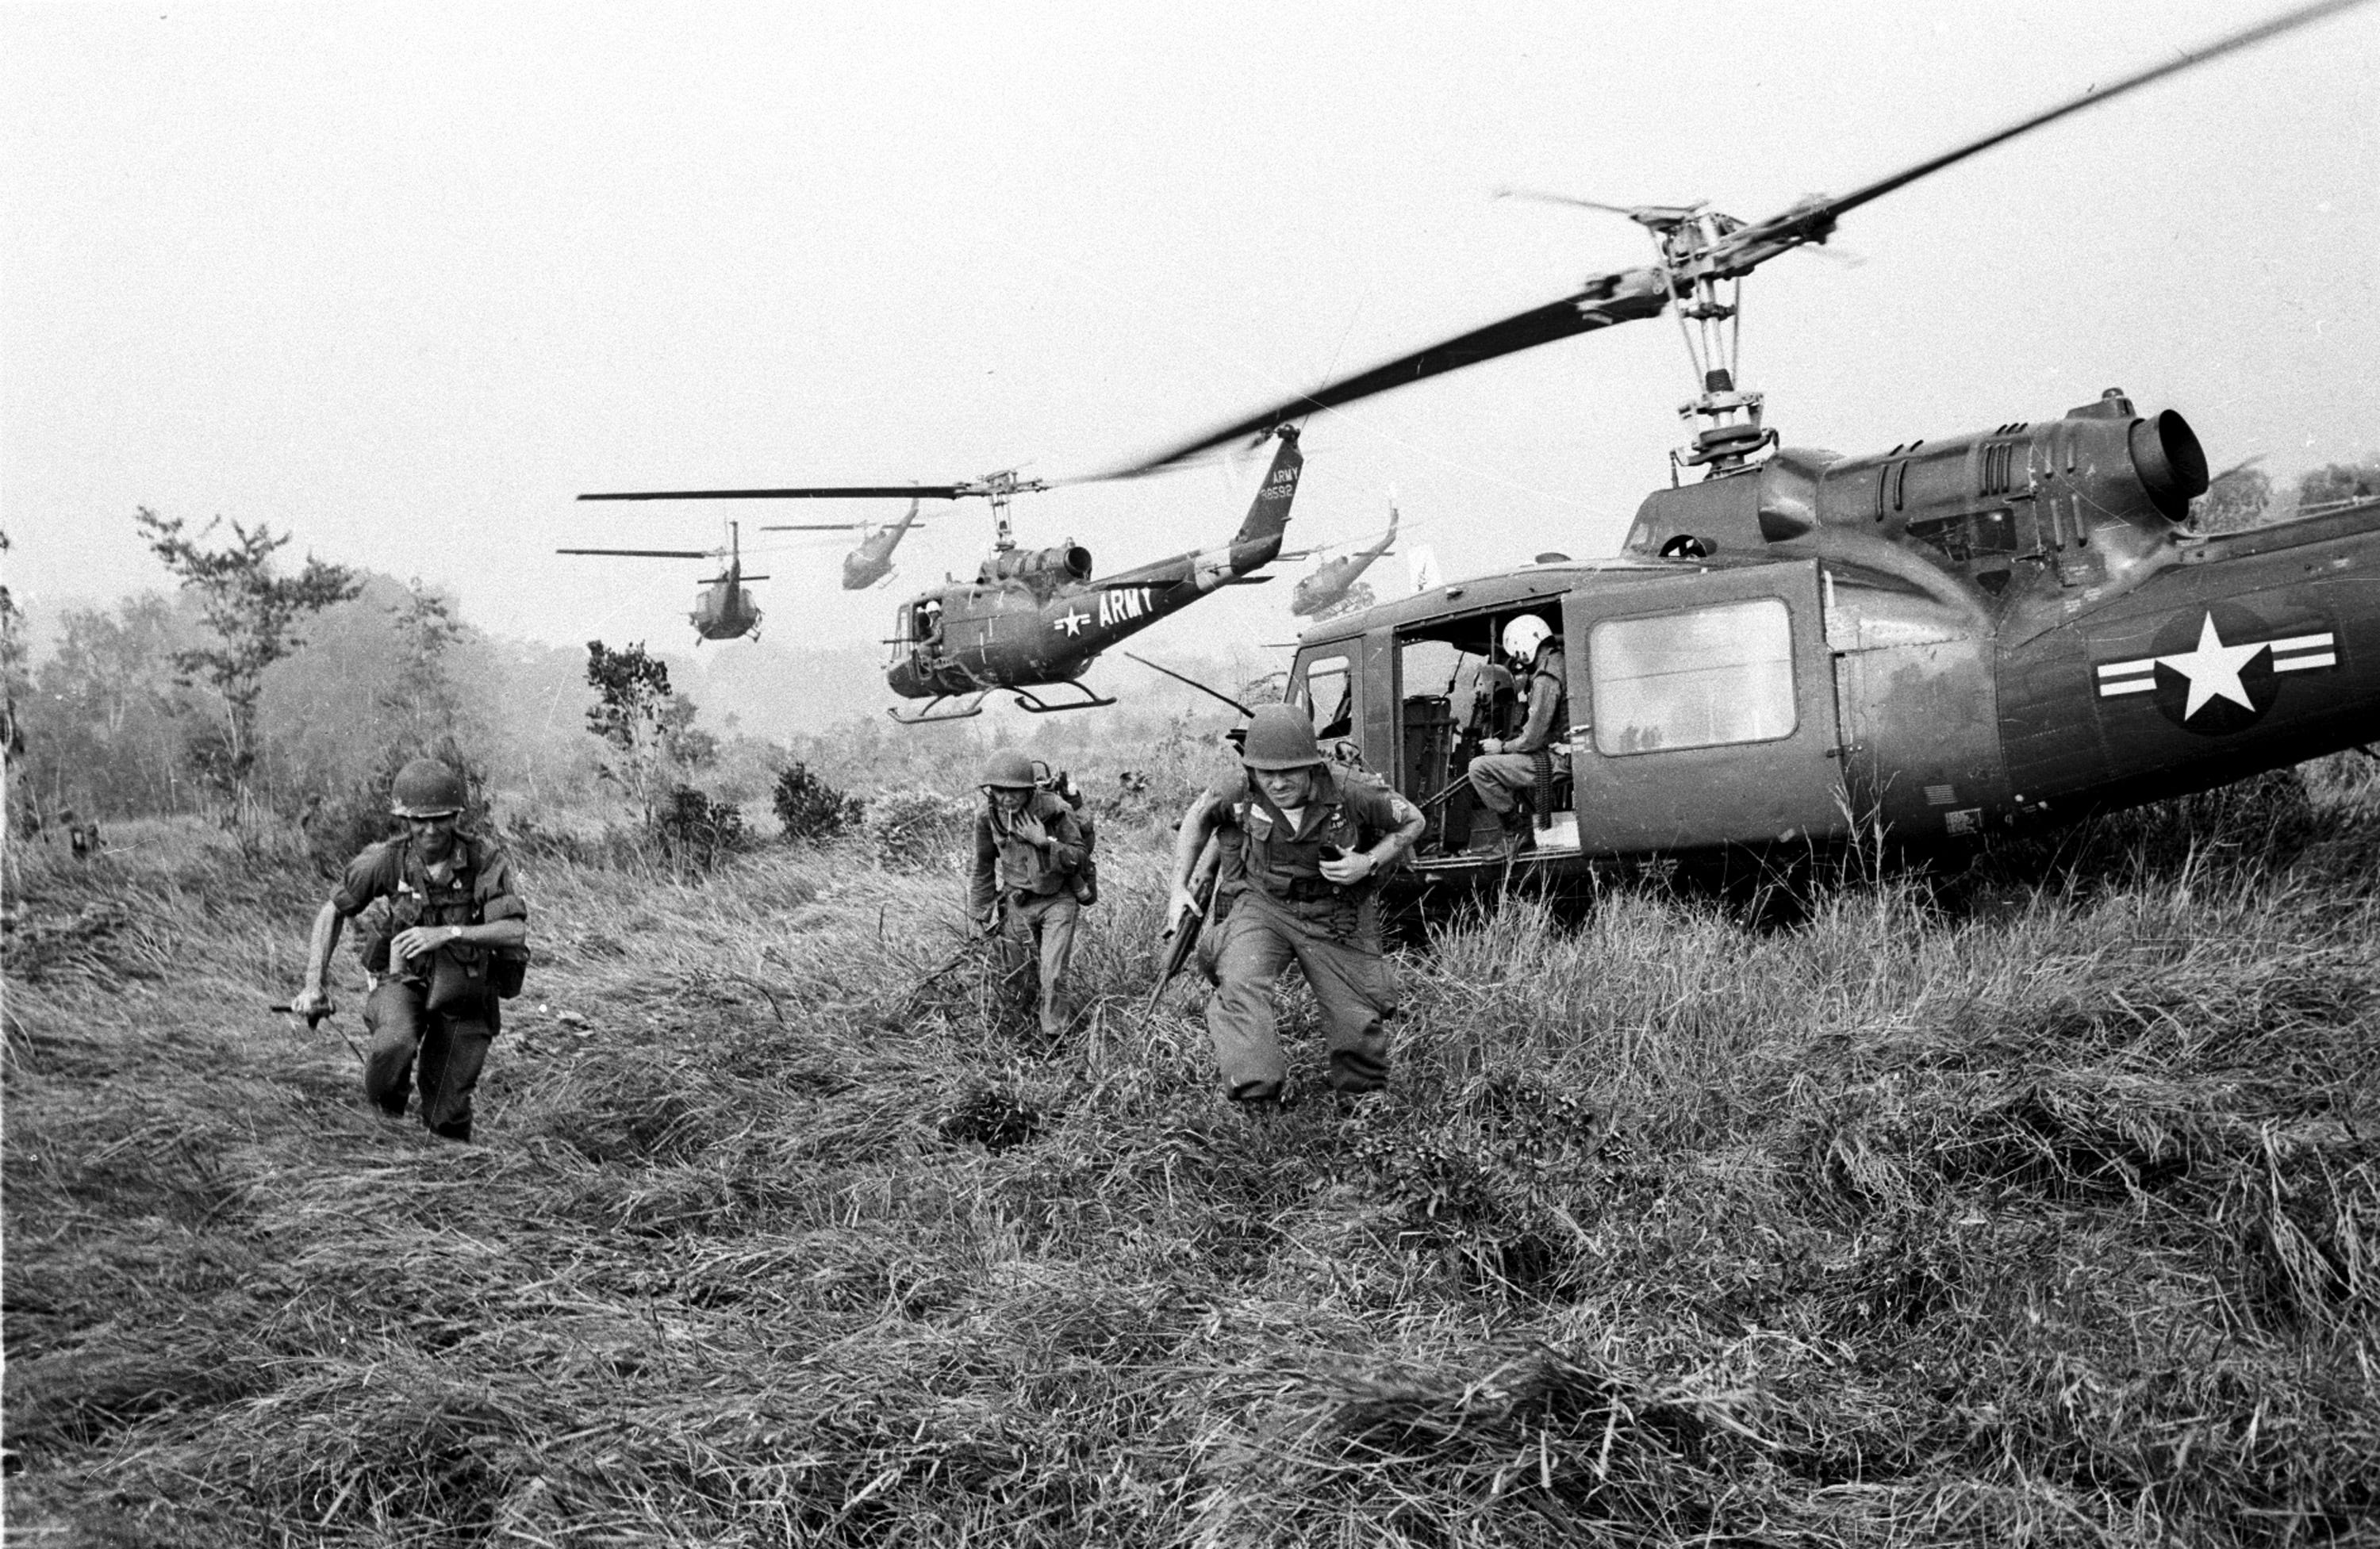 an analysis of the involvement of the united states in the vietnam war Australia's involvement in the vietnam war united states and new zealand which was an agreement to come to one another's aid in the crow testament analysis.